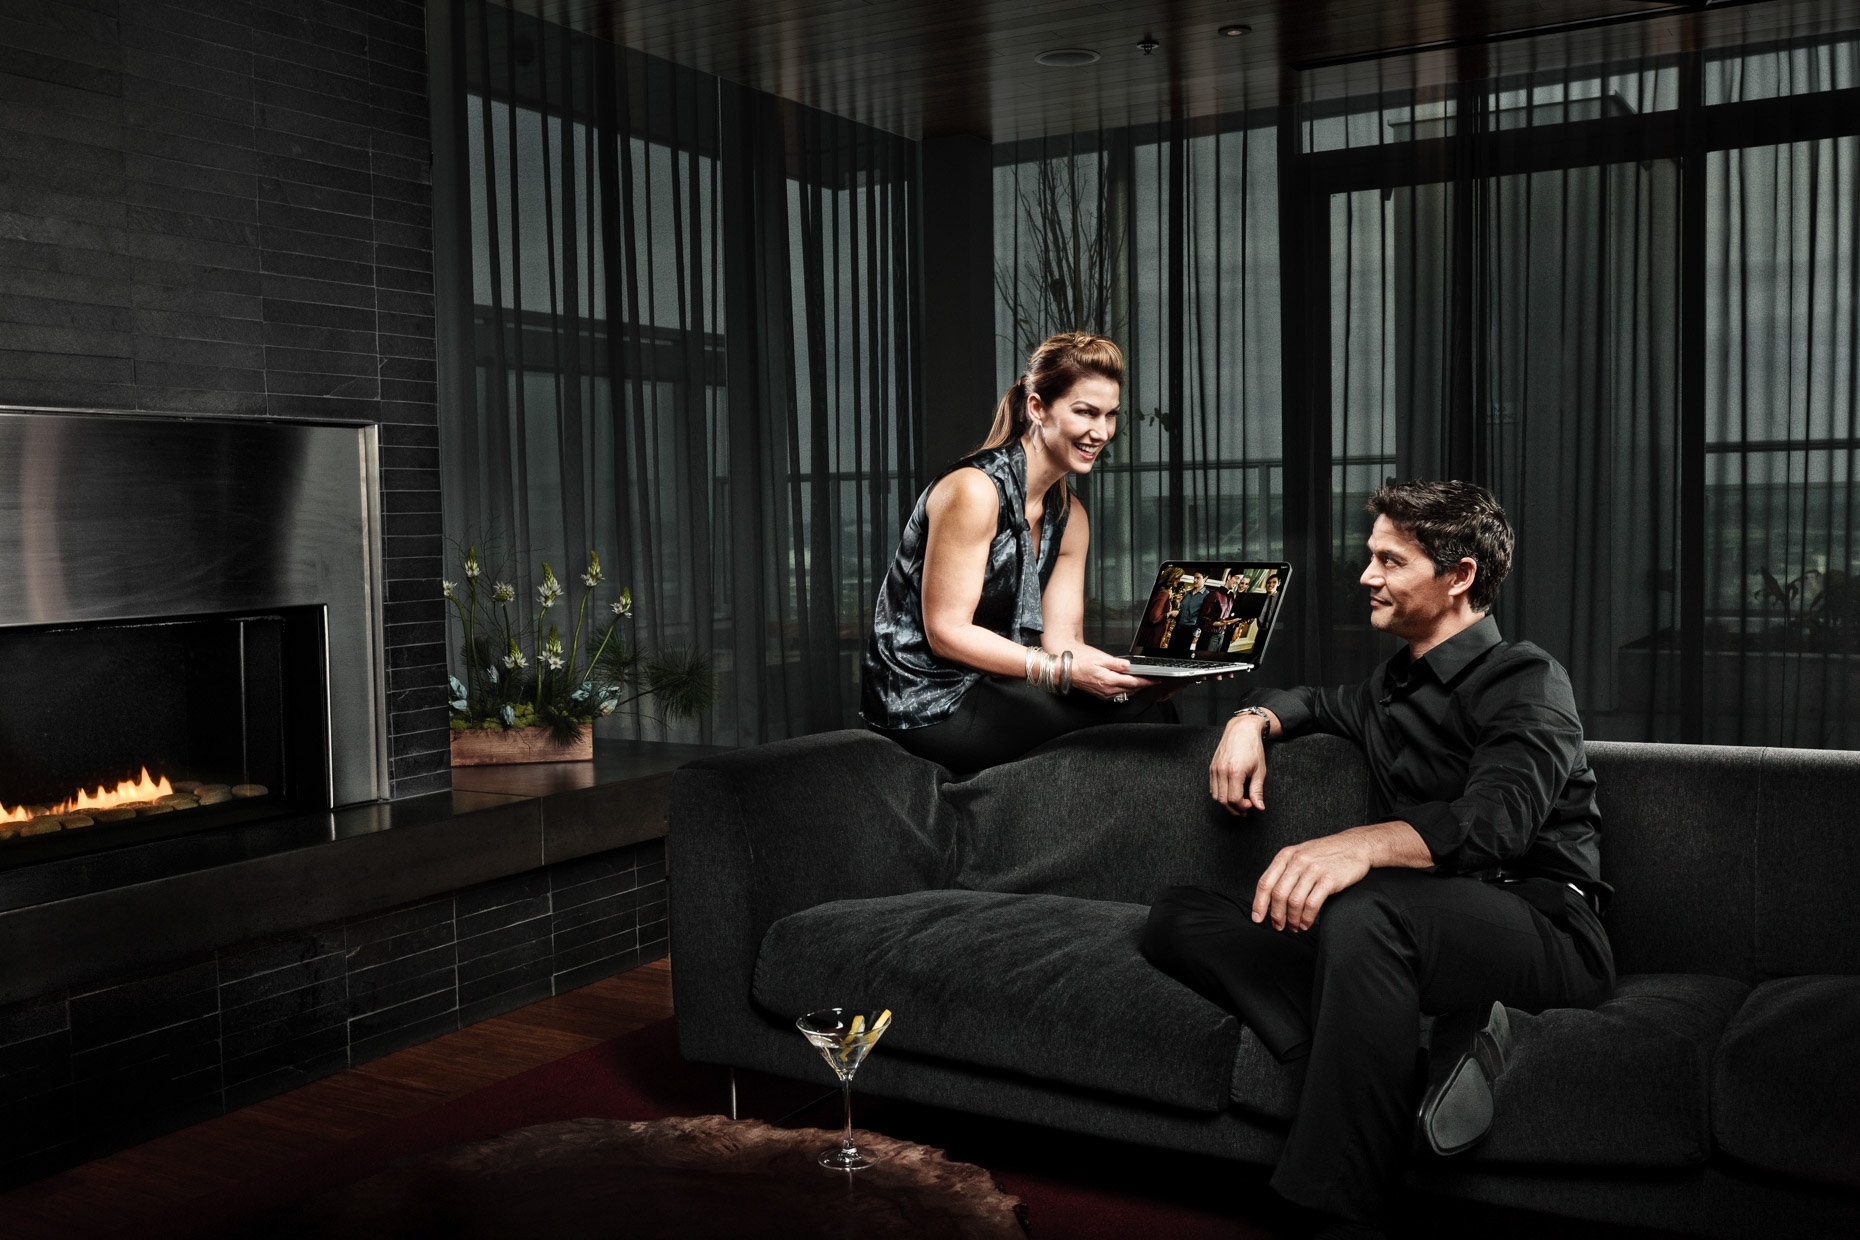 Portland models Veli Duvauchelle and Tina Kraft for HP Spectre laptop campaign in sleek Indigo penthouse by Andy Batt.